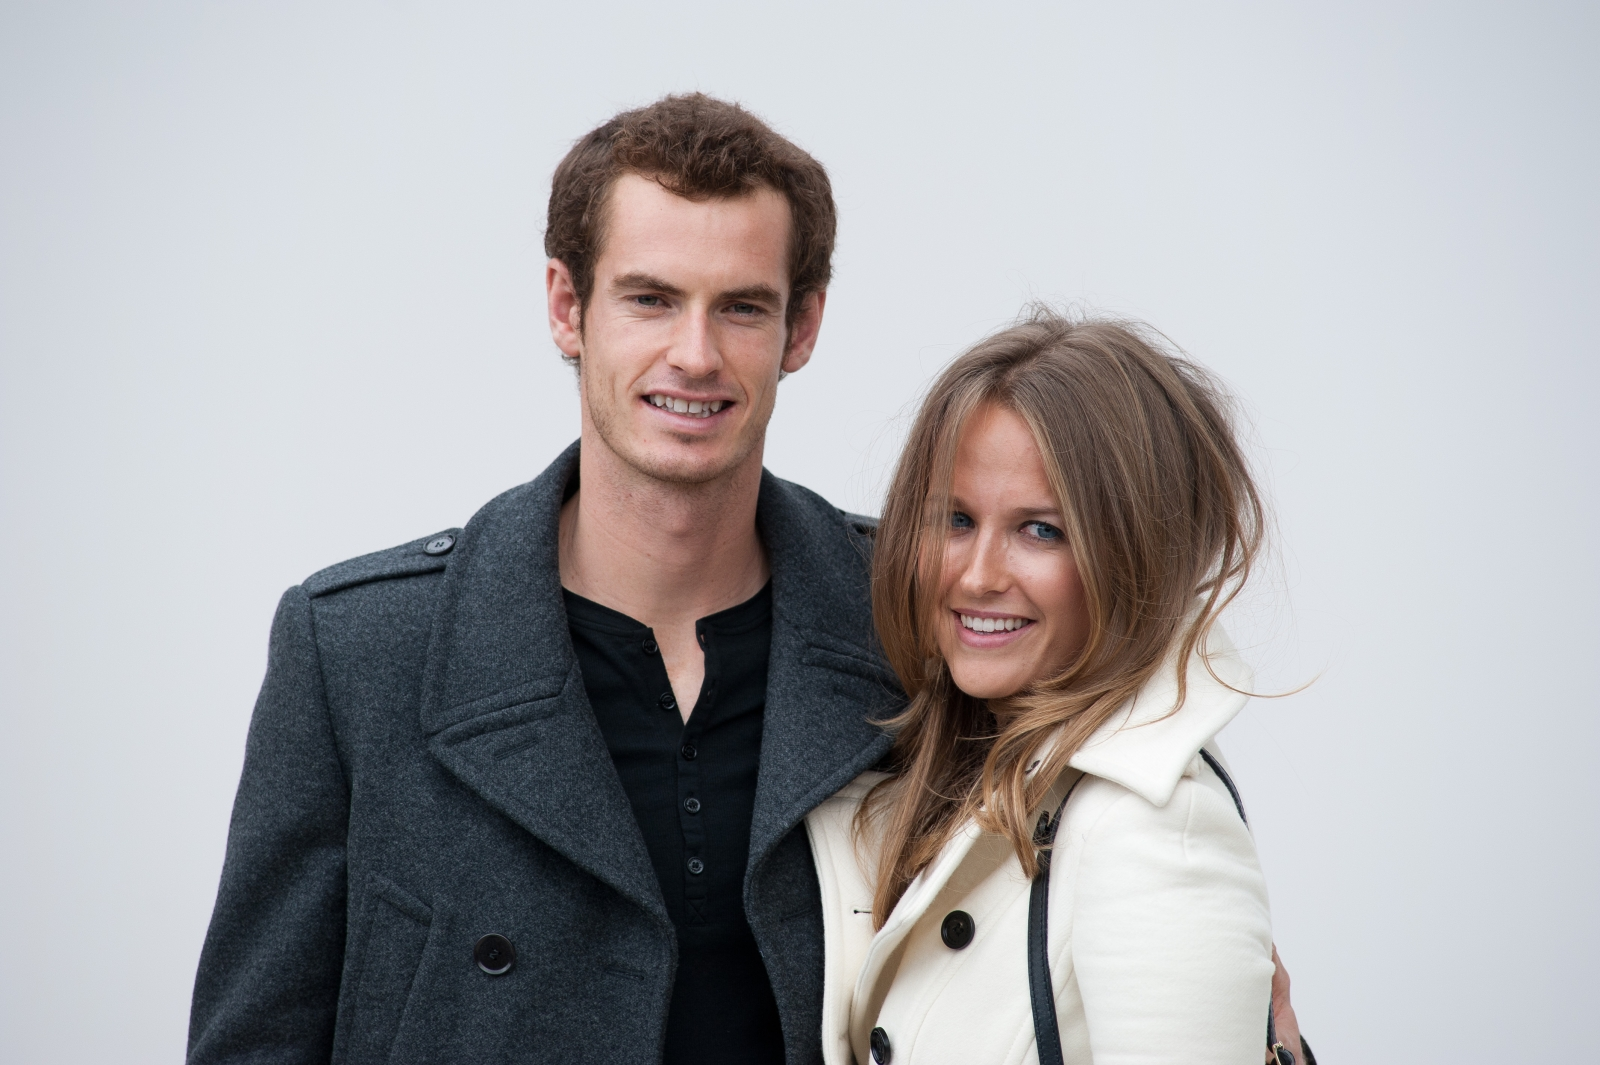 Andy Murray and Kim Sears in Burberry